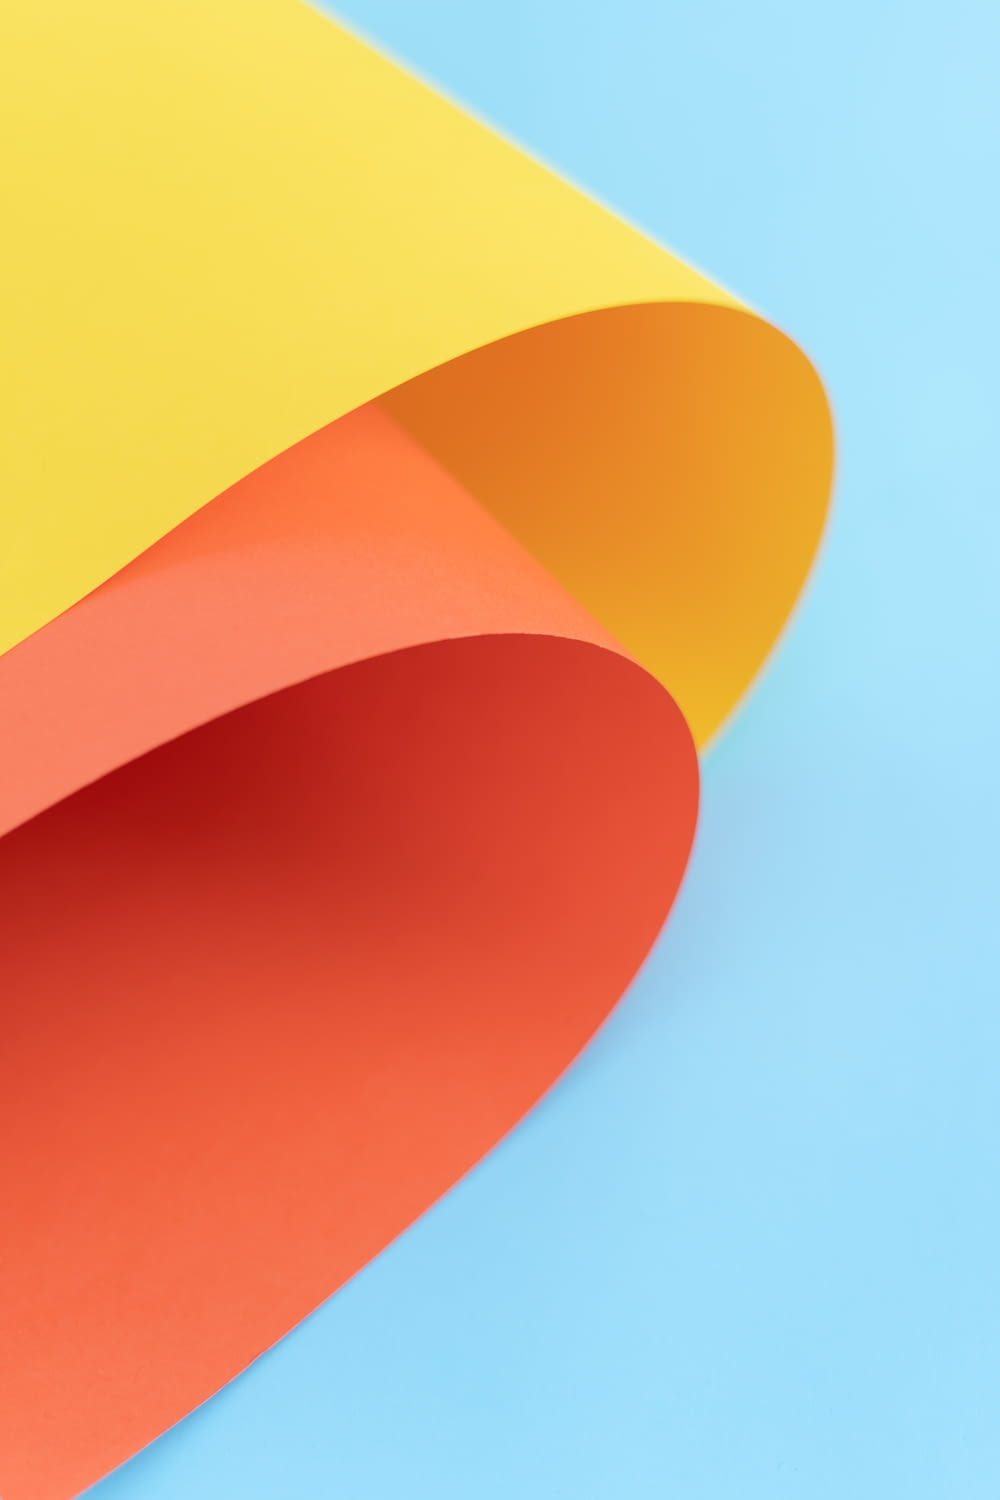 yellow, orange, and red abstract art wallpaper